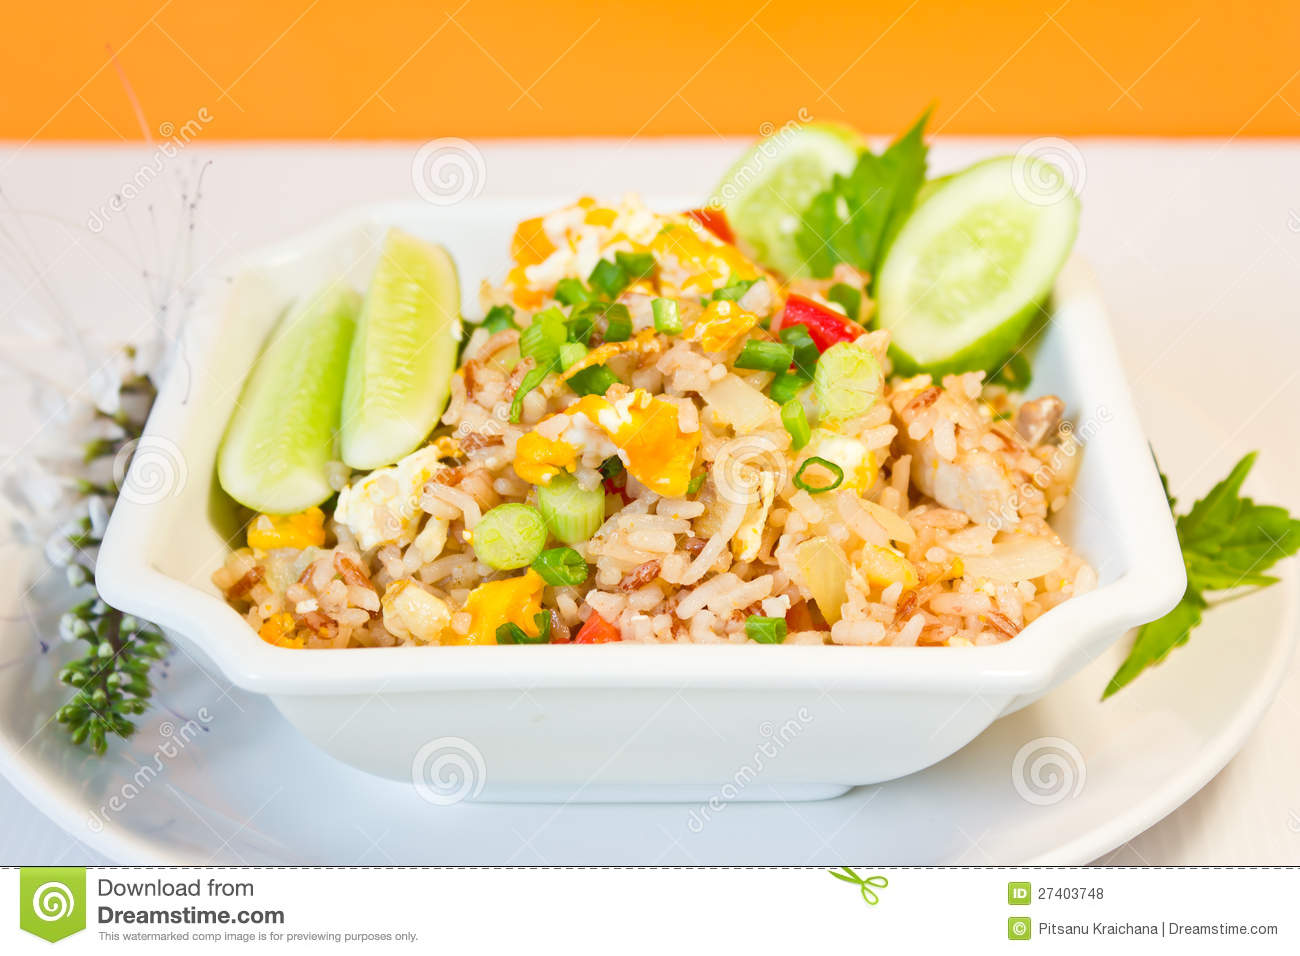 Southeast asian food royalty free stock photos image for Asia asian cuisine